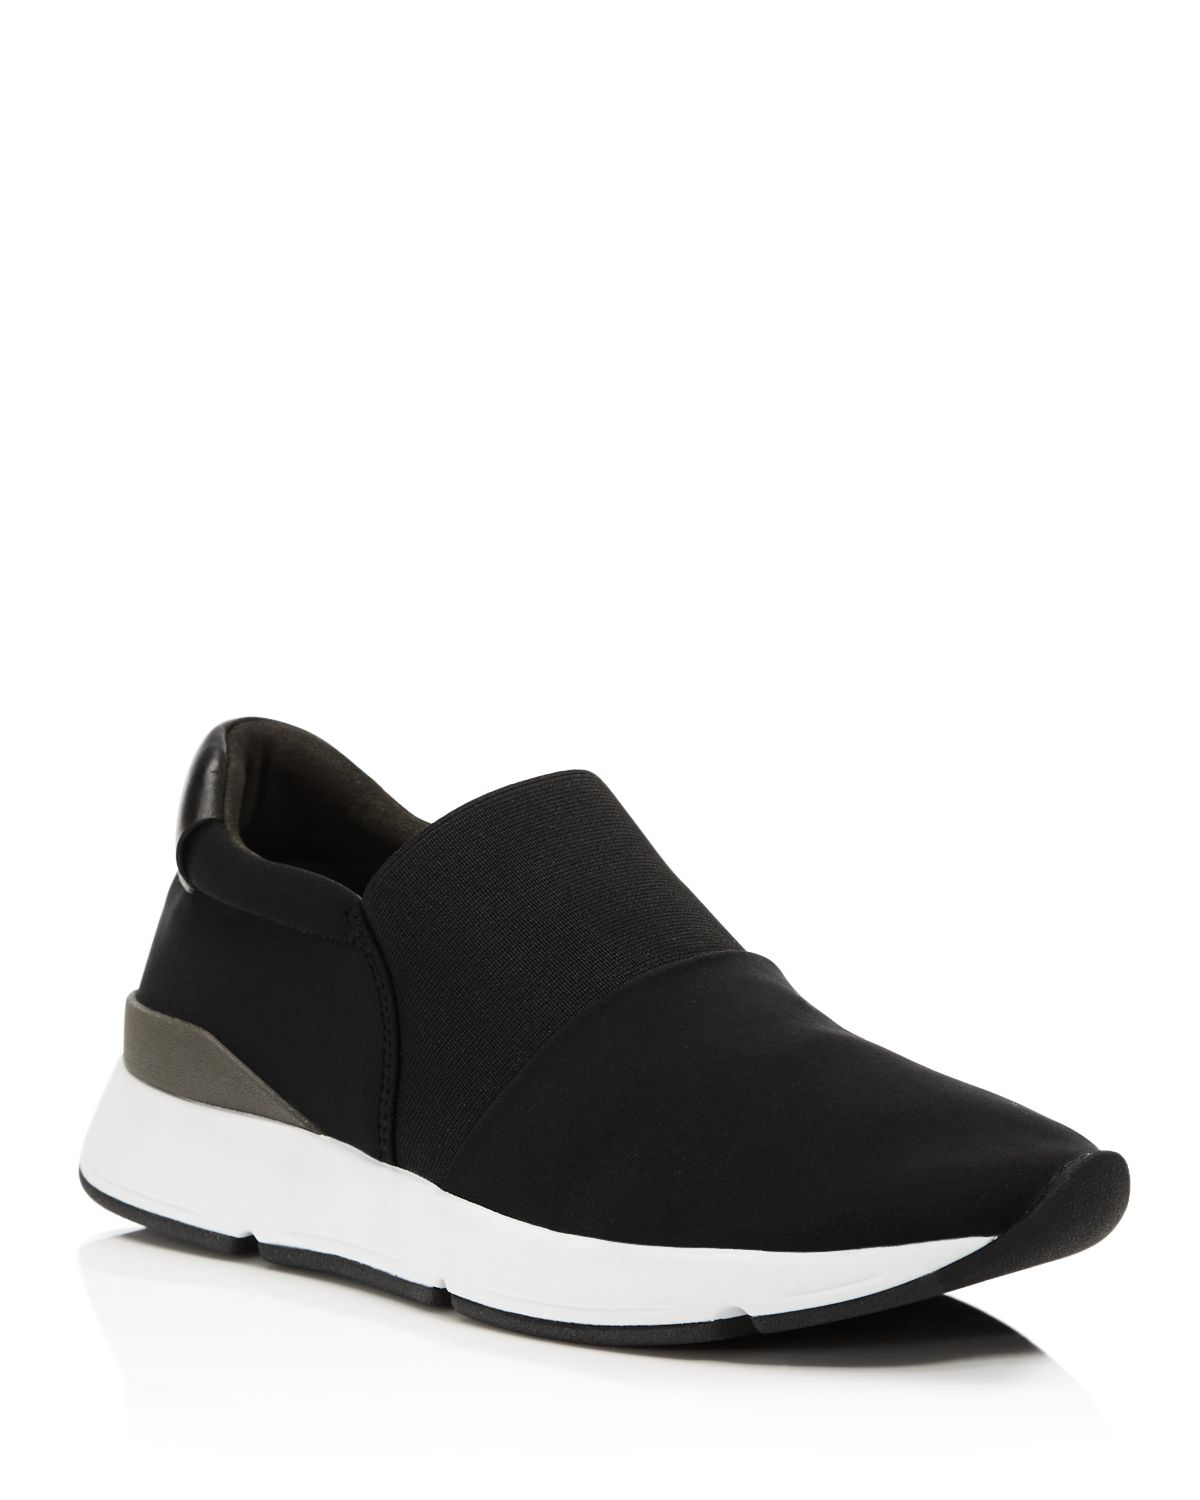 Women's Truscott Slip On Sneakers by Vince